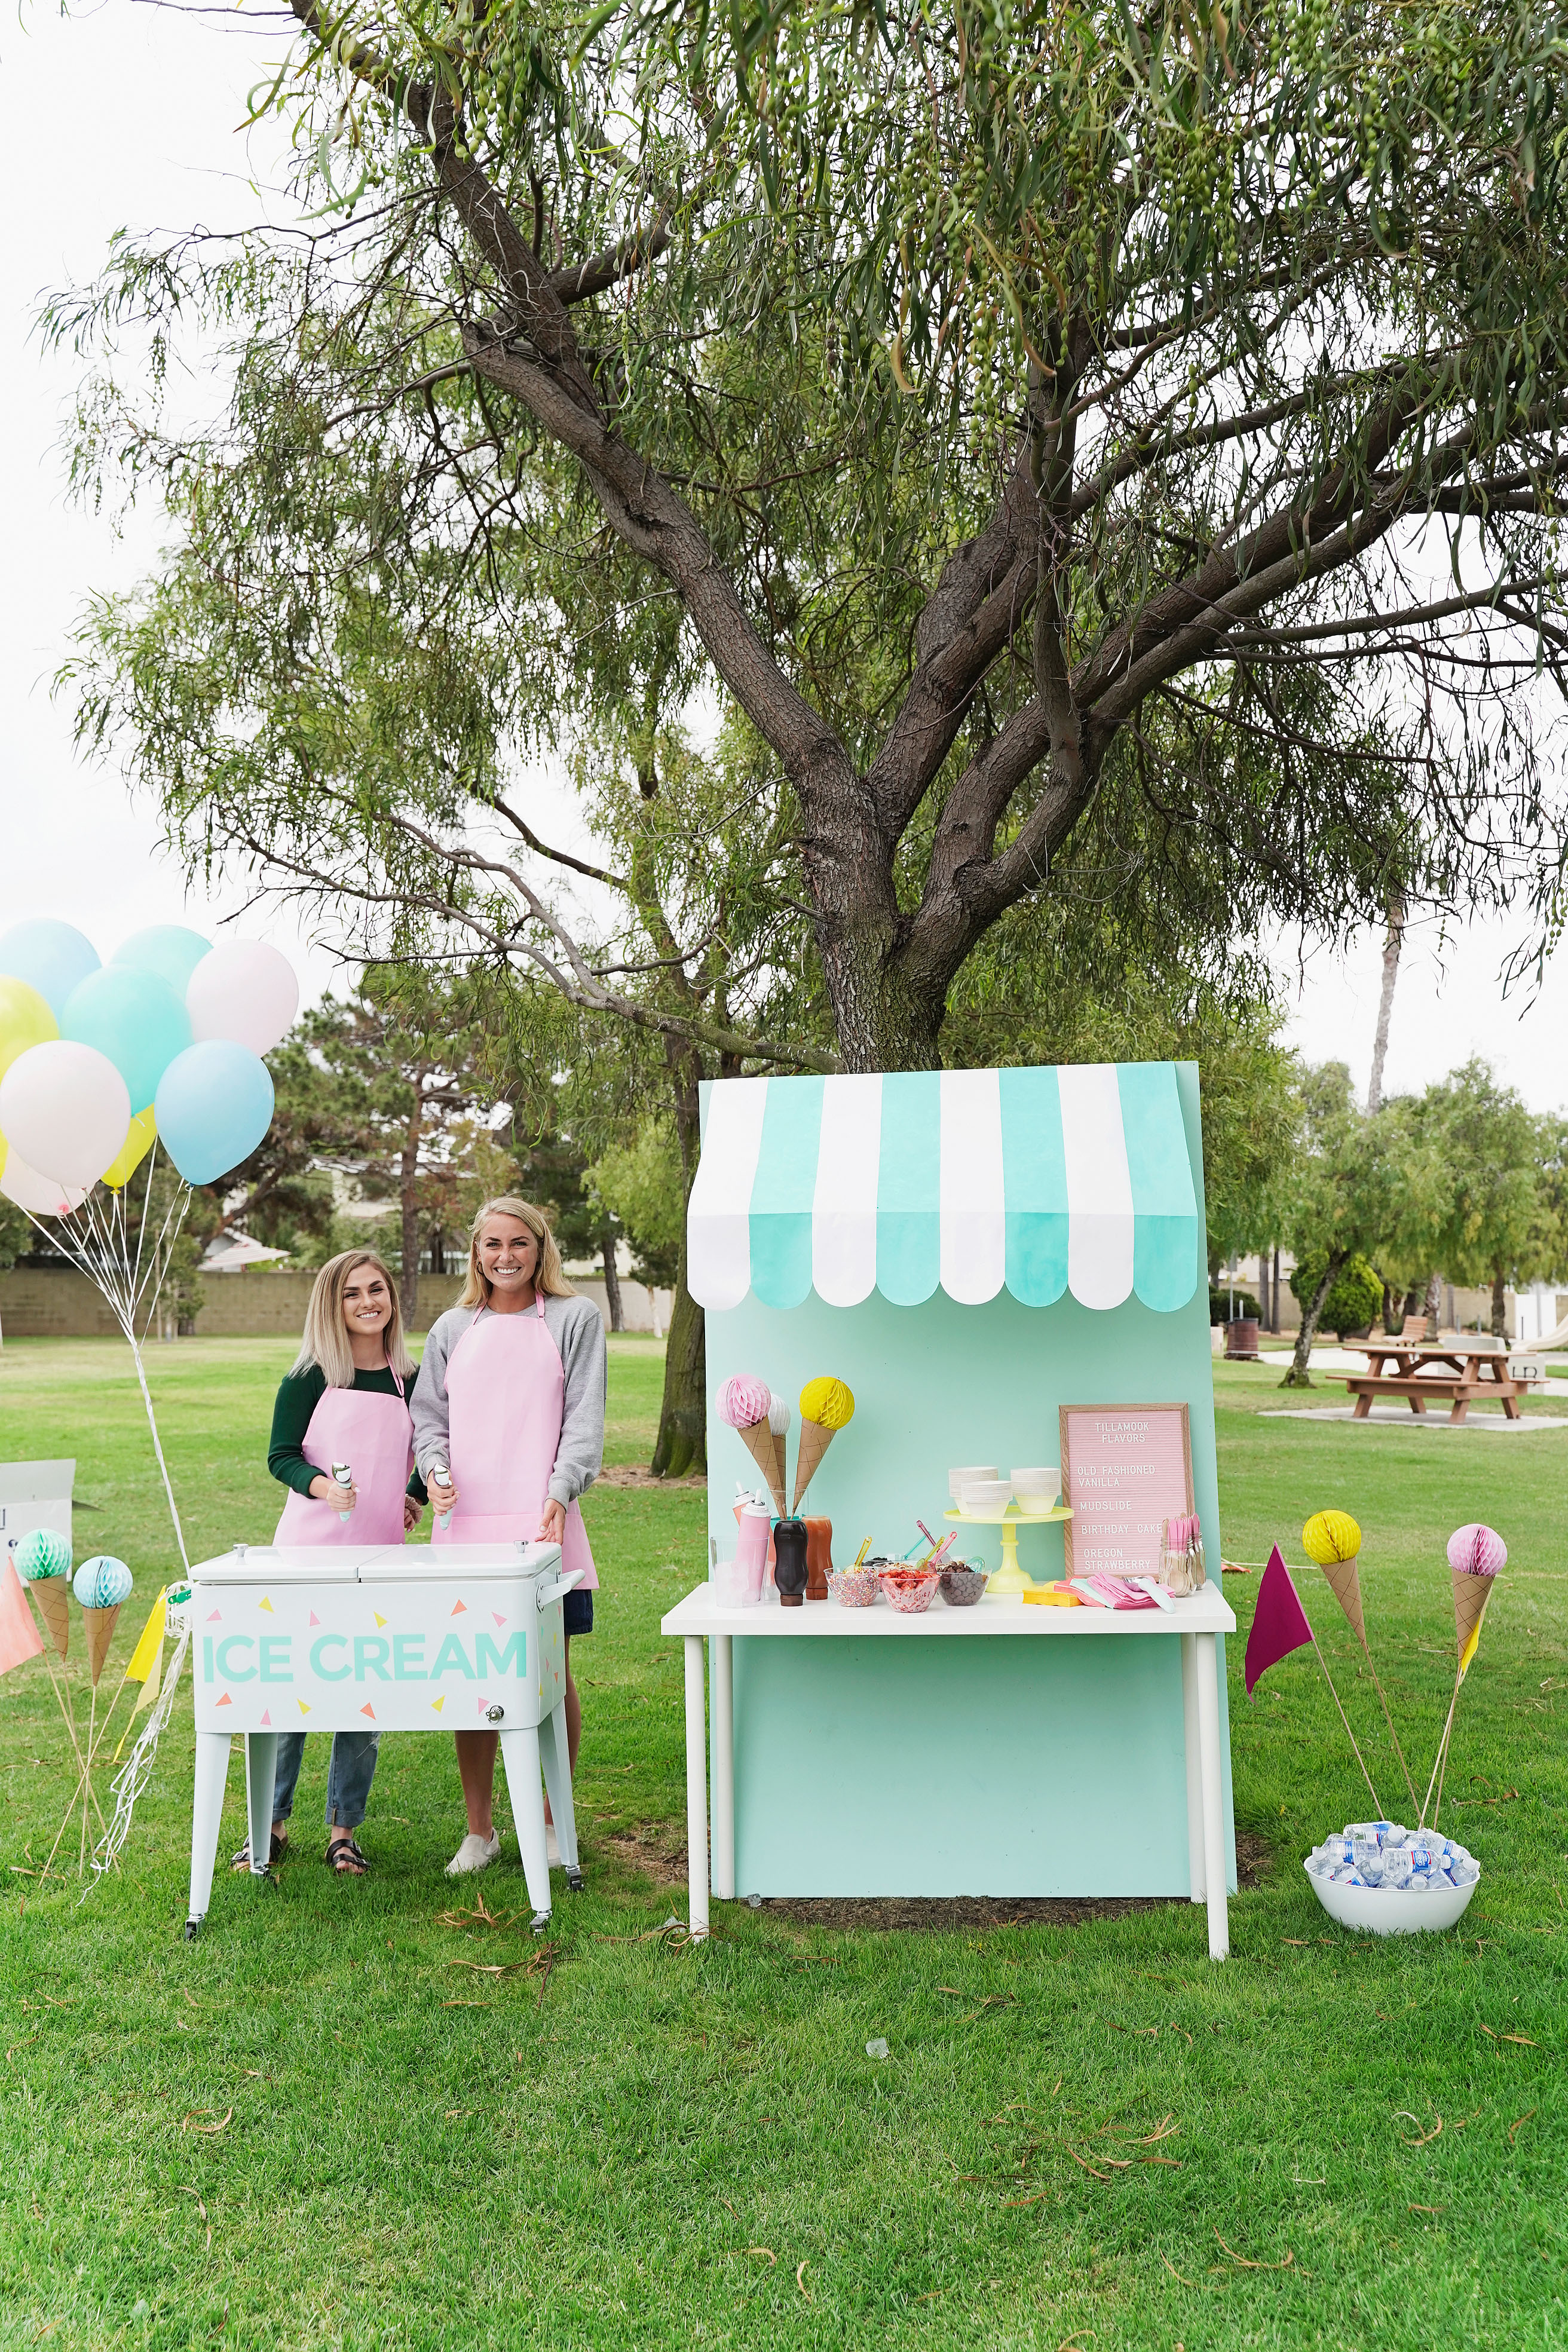 Learn how to throw the most amazing ice cream party EVER this summer! Complete with adorable decorations and the most delicious ice cream.